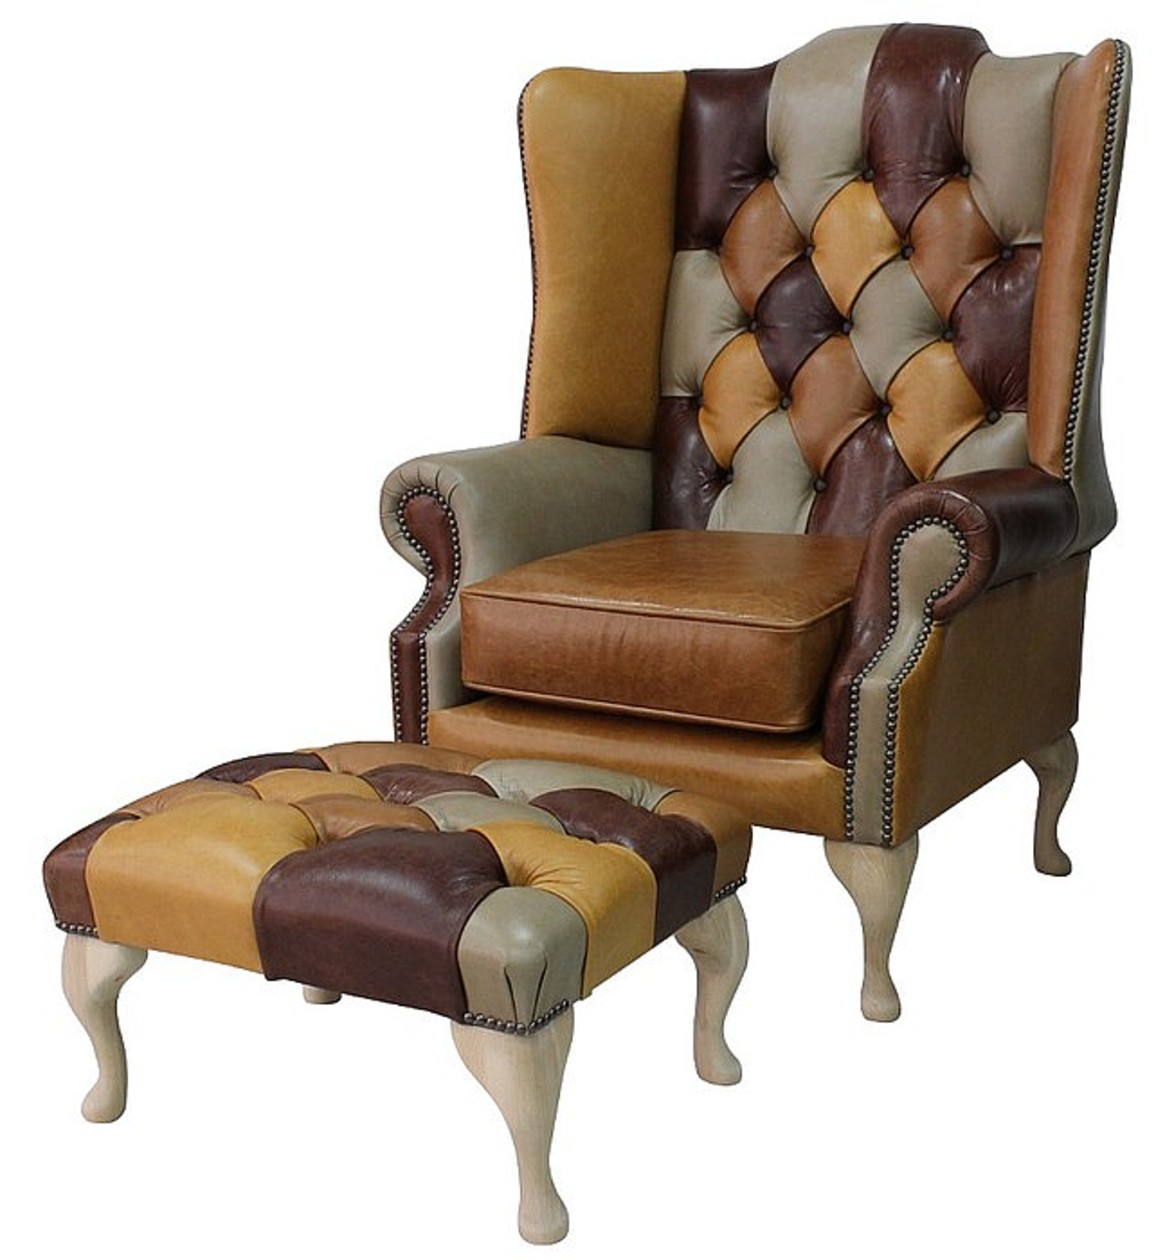 Merveilleux Chesterfield Princeu0027s Patchwork Old English Leather Wing Chair + Footstool